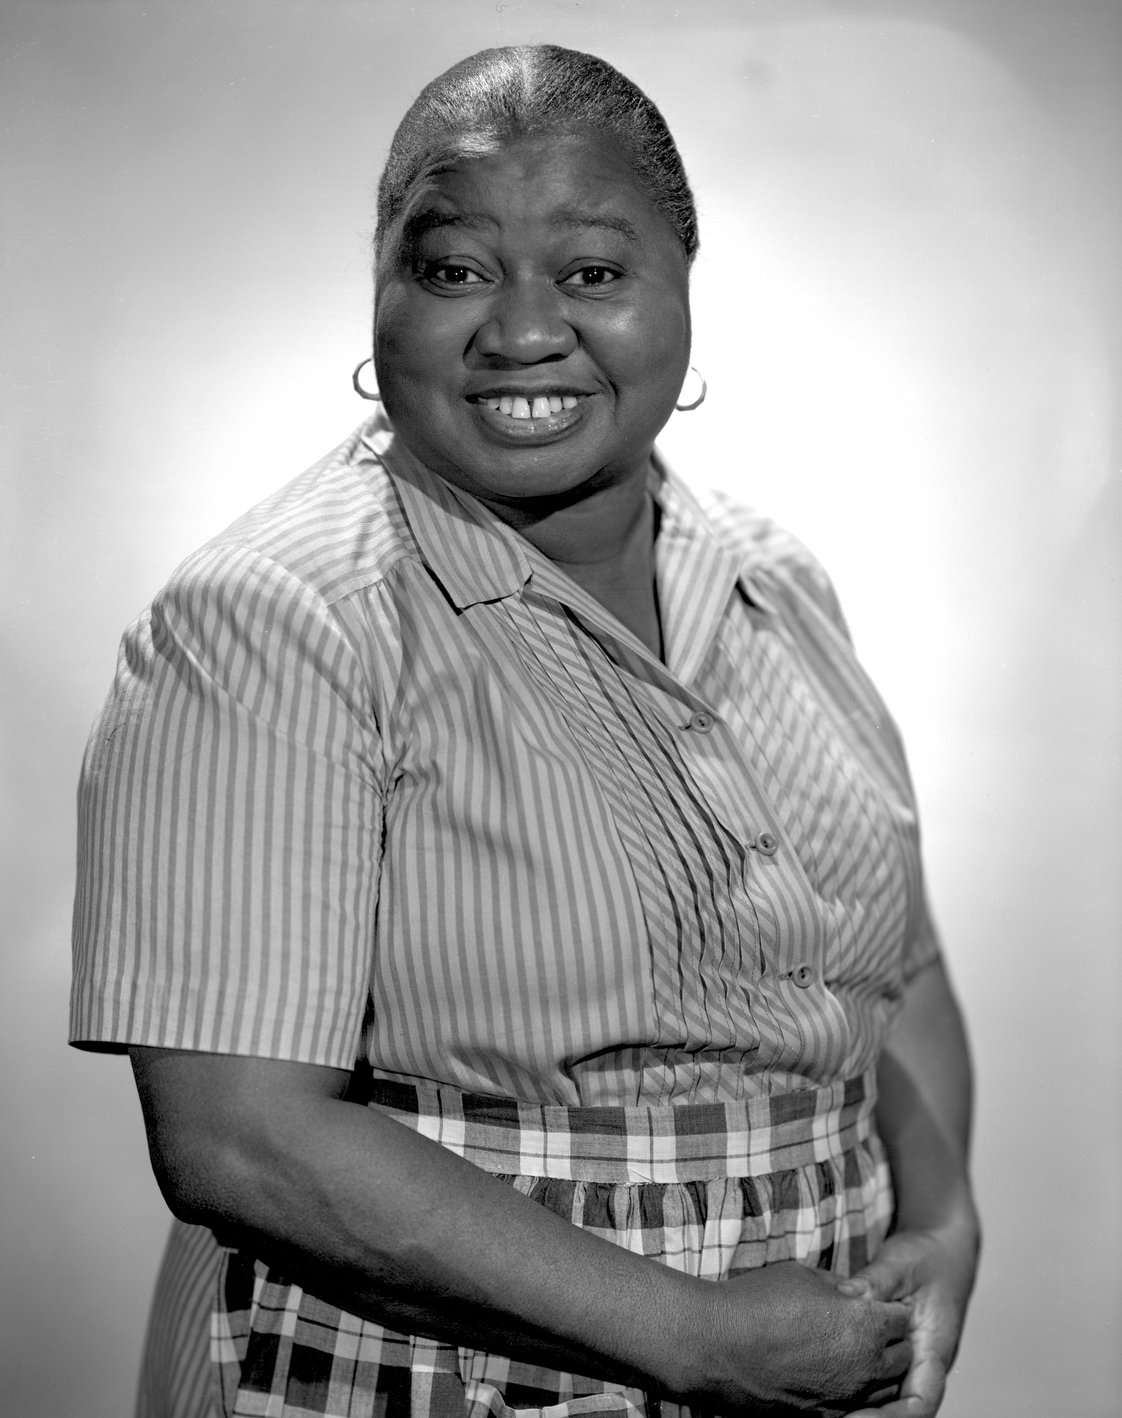 Hattie McDaniel, star of the CBS Radio program, The Beulah Show. November 14, 1947. Hollywood, CA. | Photo by CBS via Getty Images